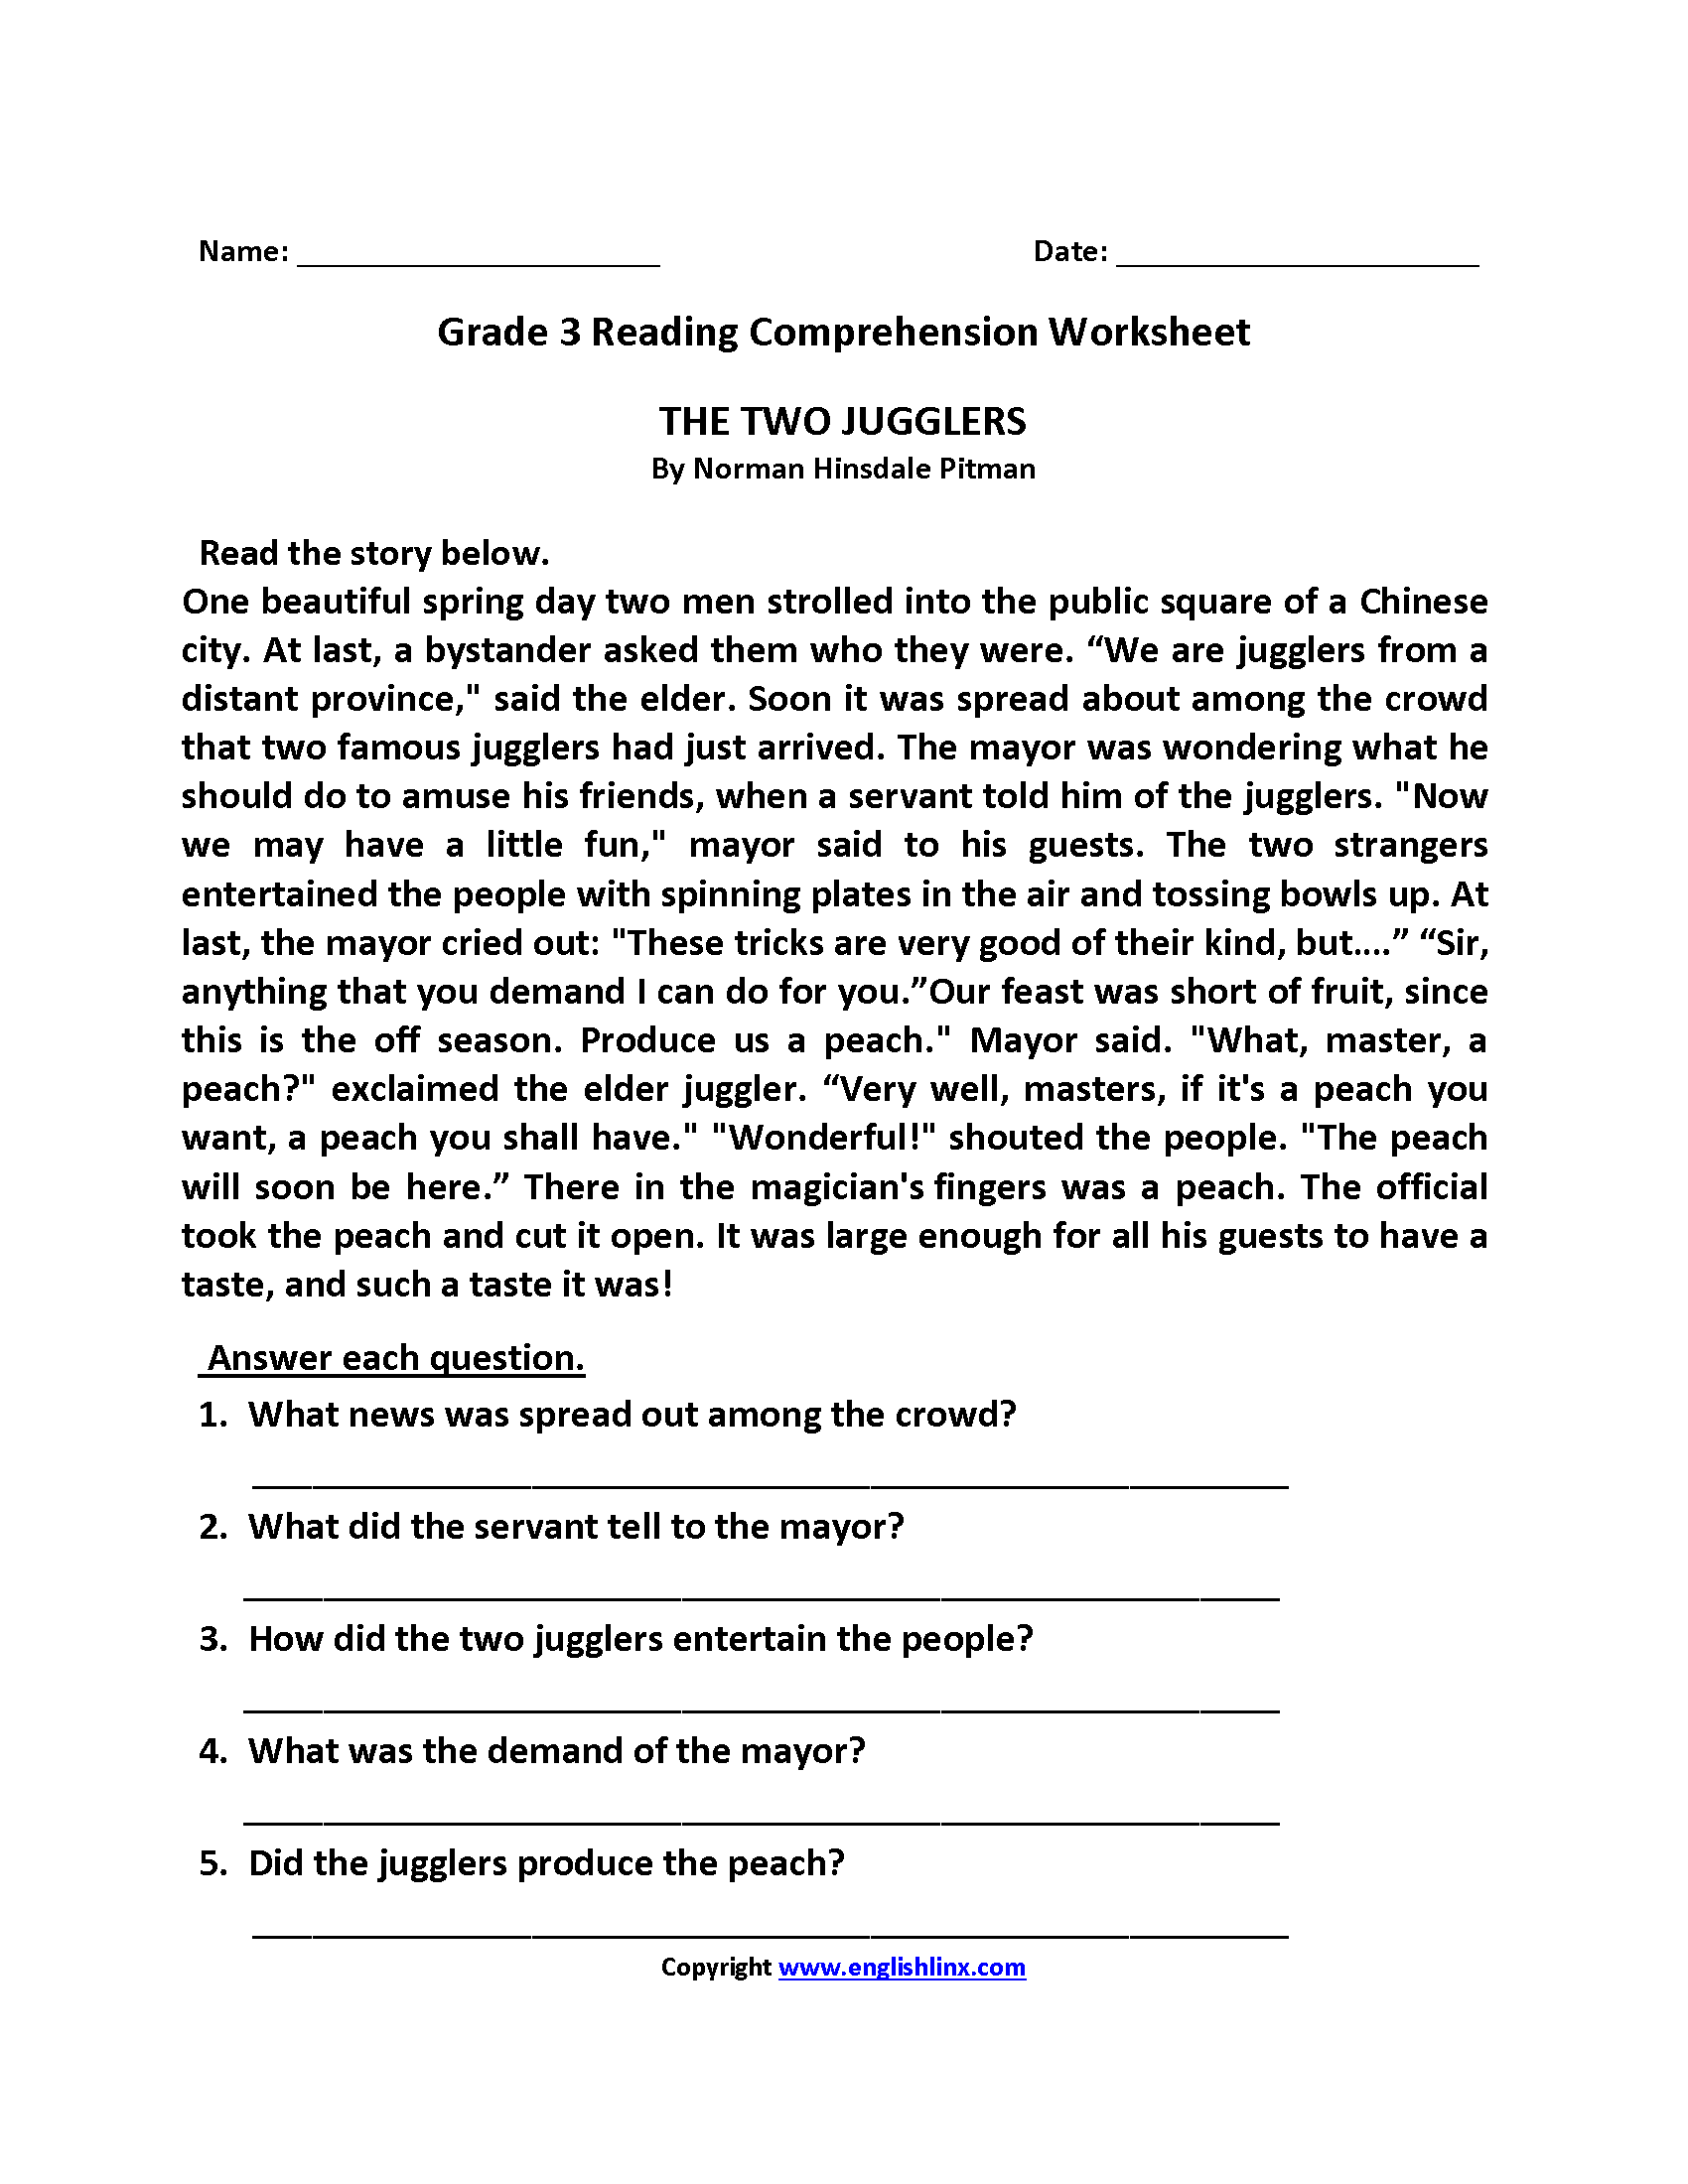 Two Jugglers Third Grade Reading Worksheets